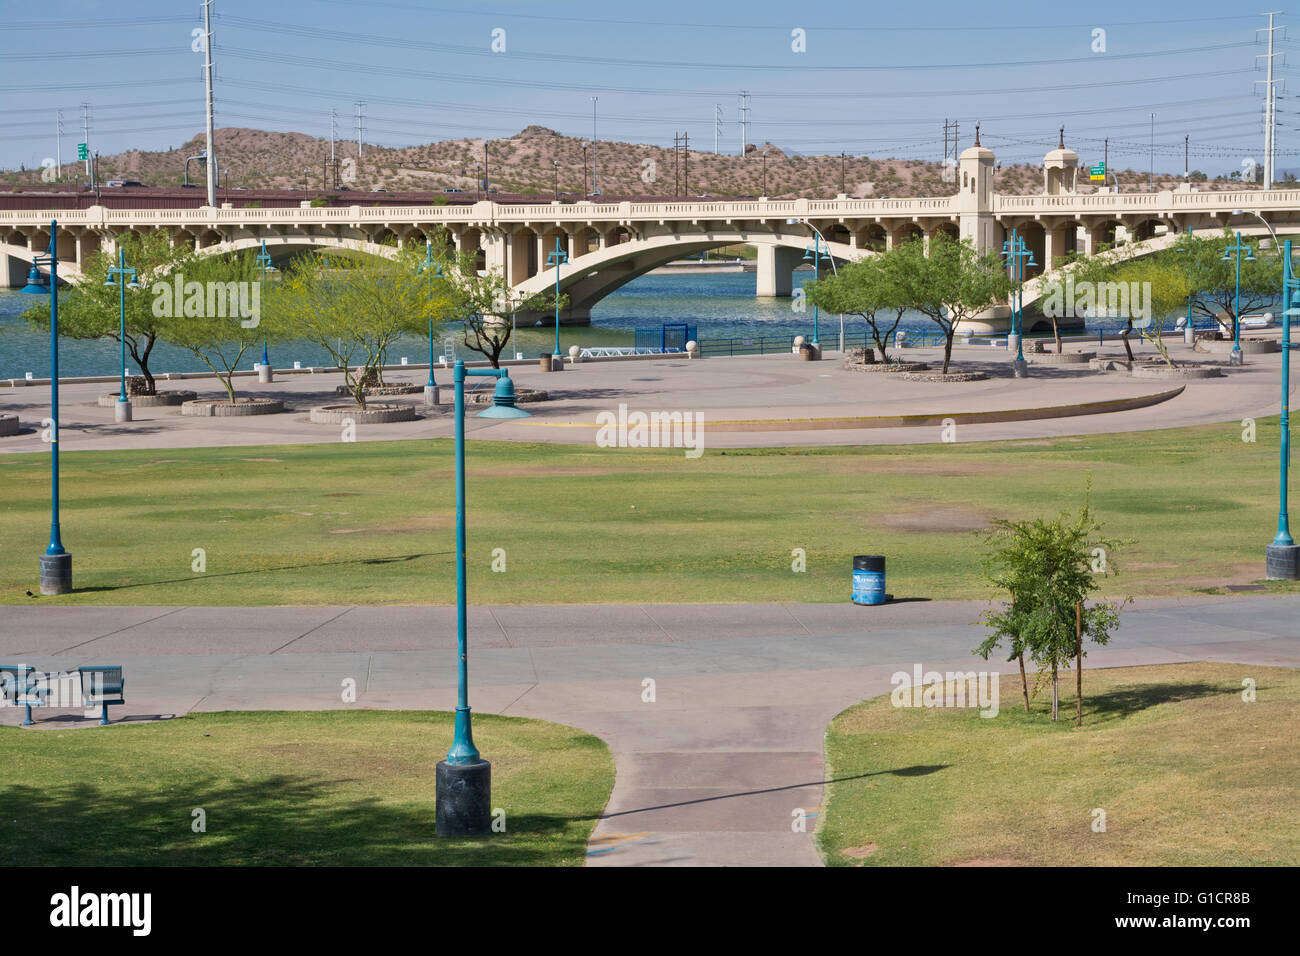 Tempe Beach Park in Tempe, Arizona (Phoenix).  Mill Avenue bridge crossing Tempe Town Lake and the Salt River bed. - Stock Image